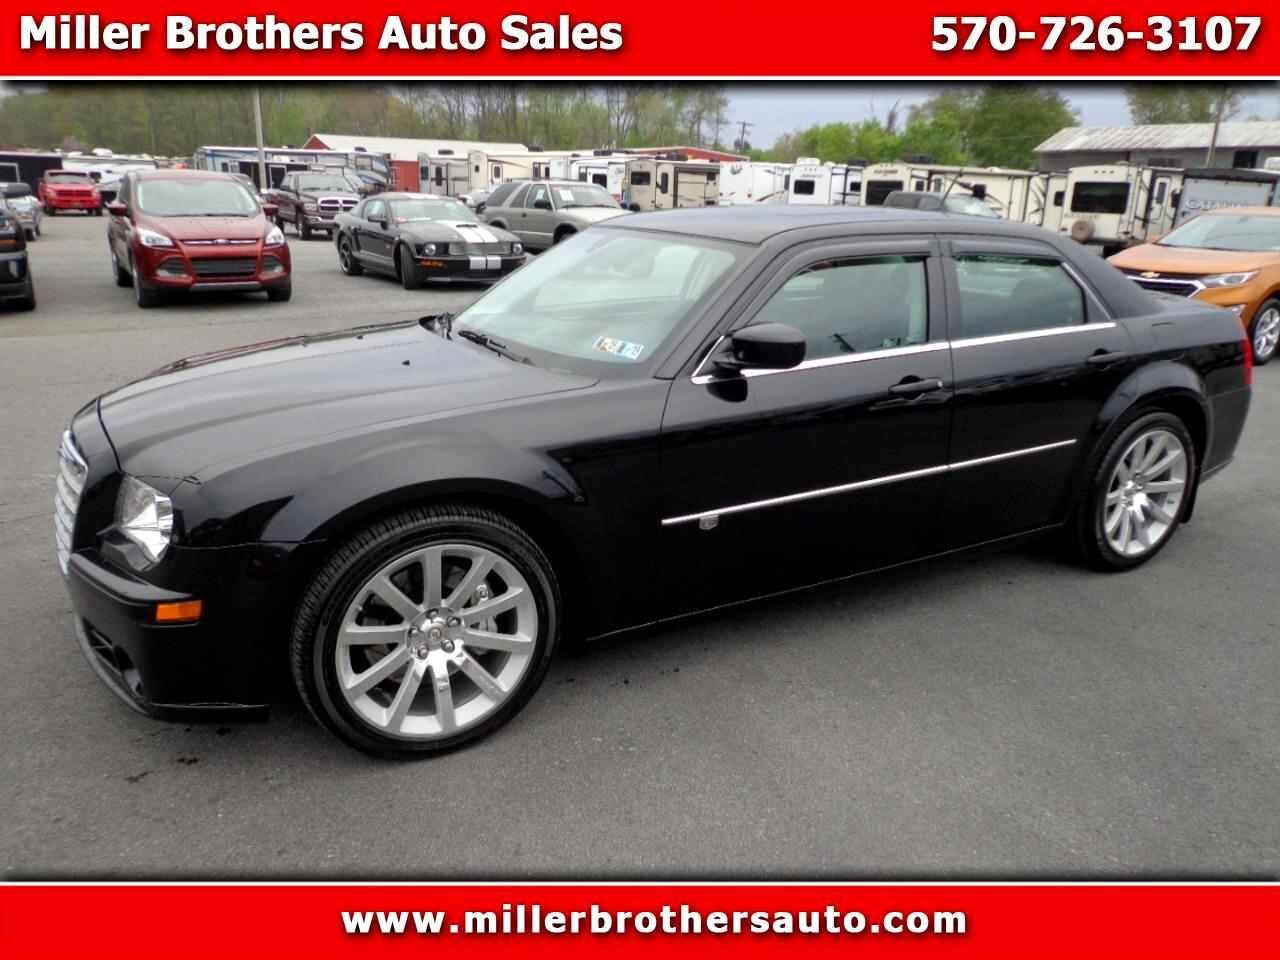 2008 Chrysler 300 SRT-8